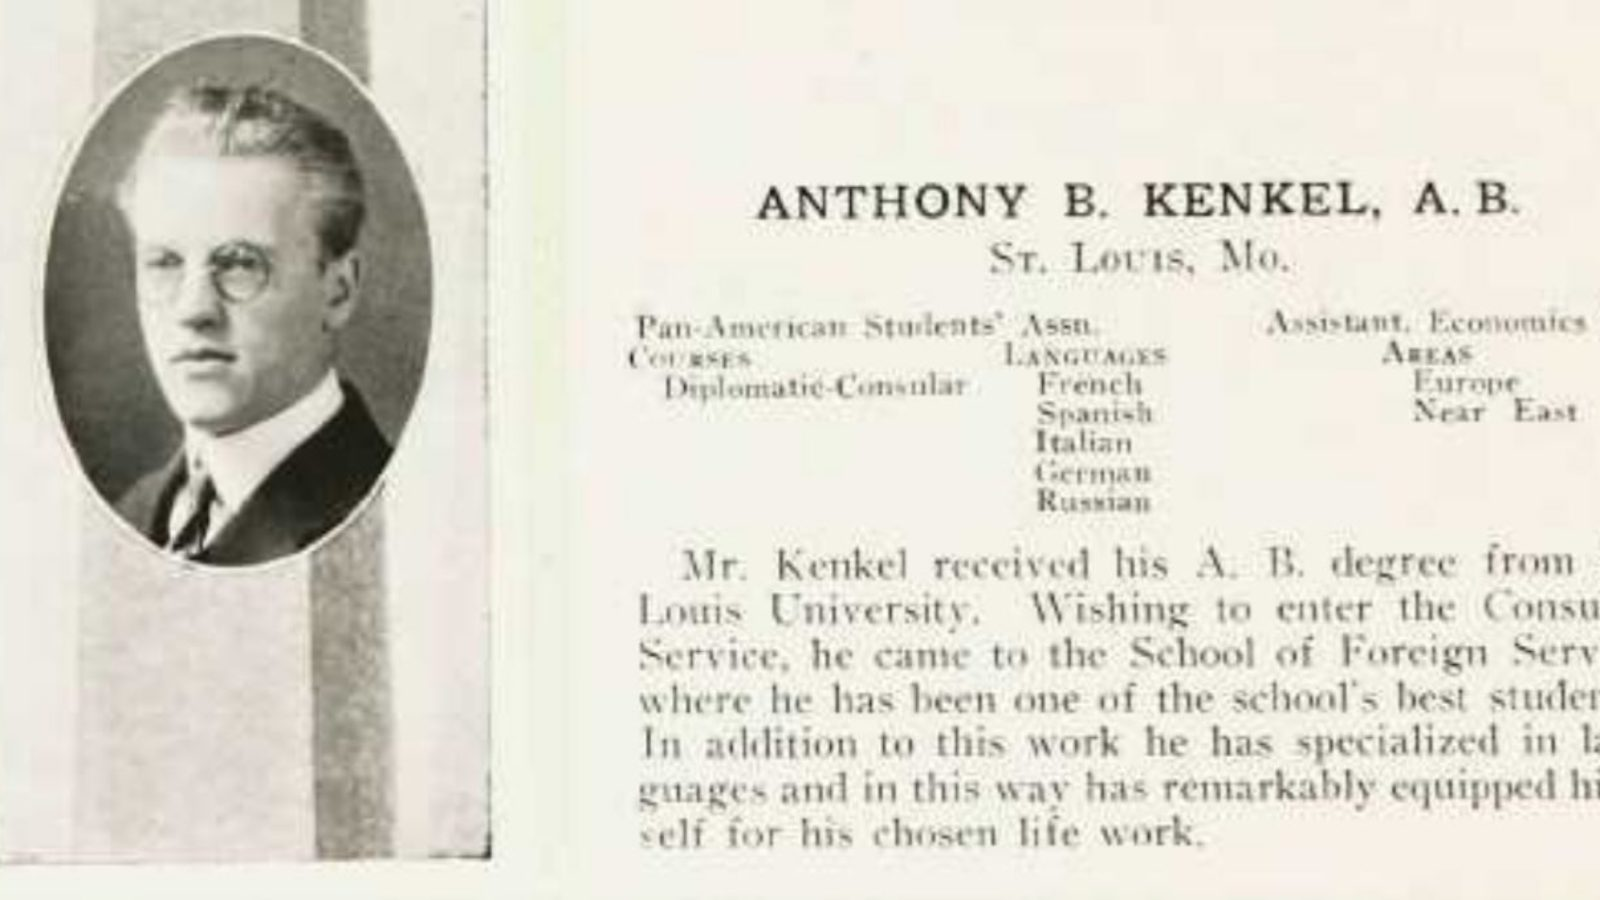 Anthony B. Kenkel Yearbook Entry